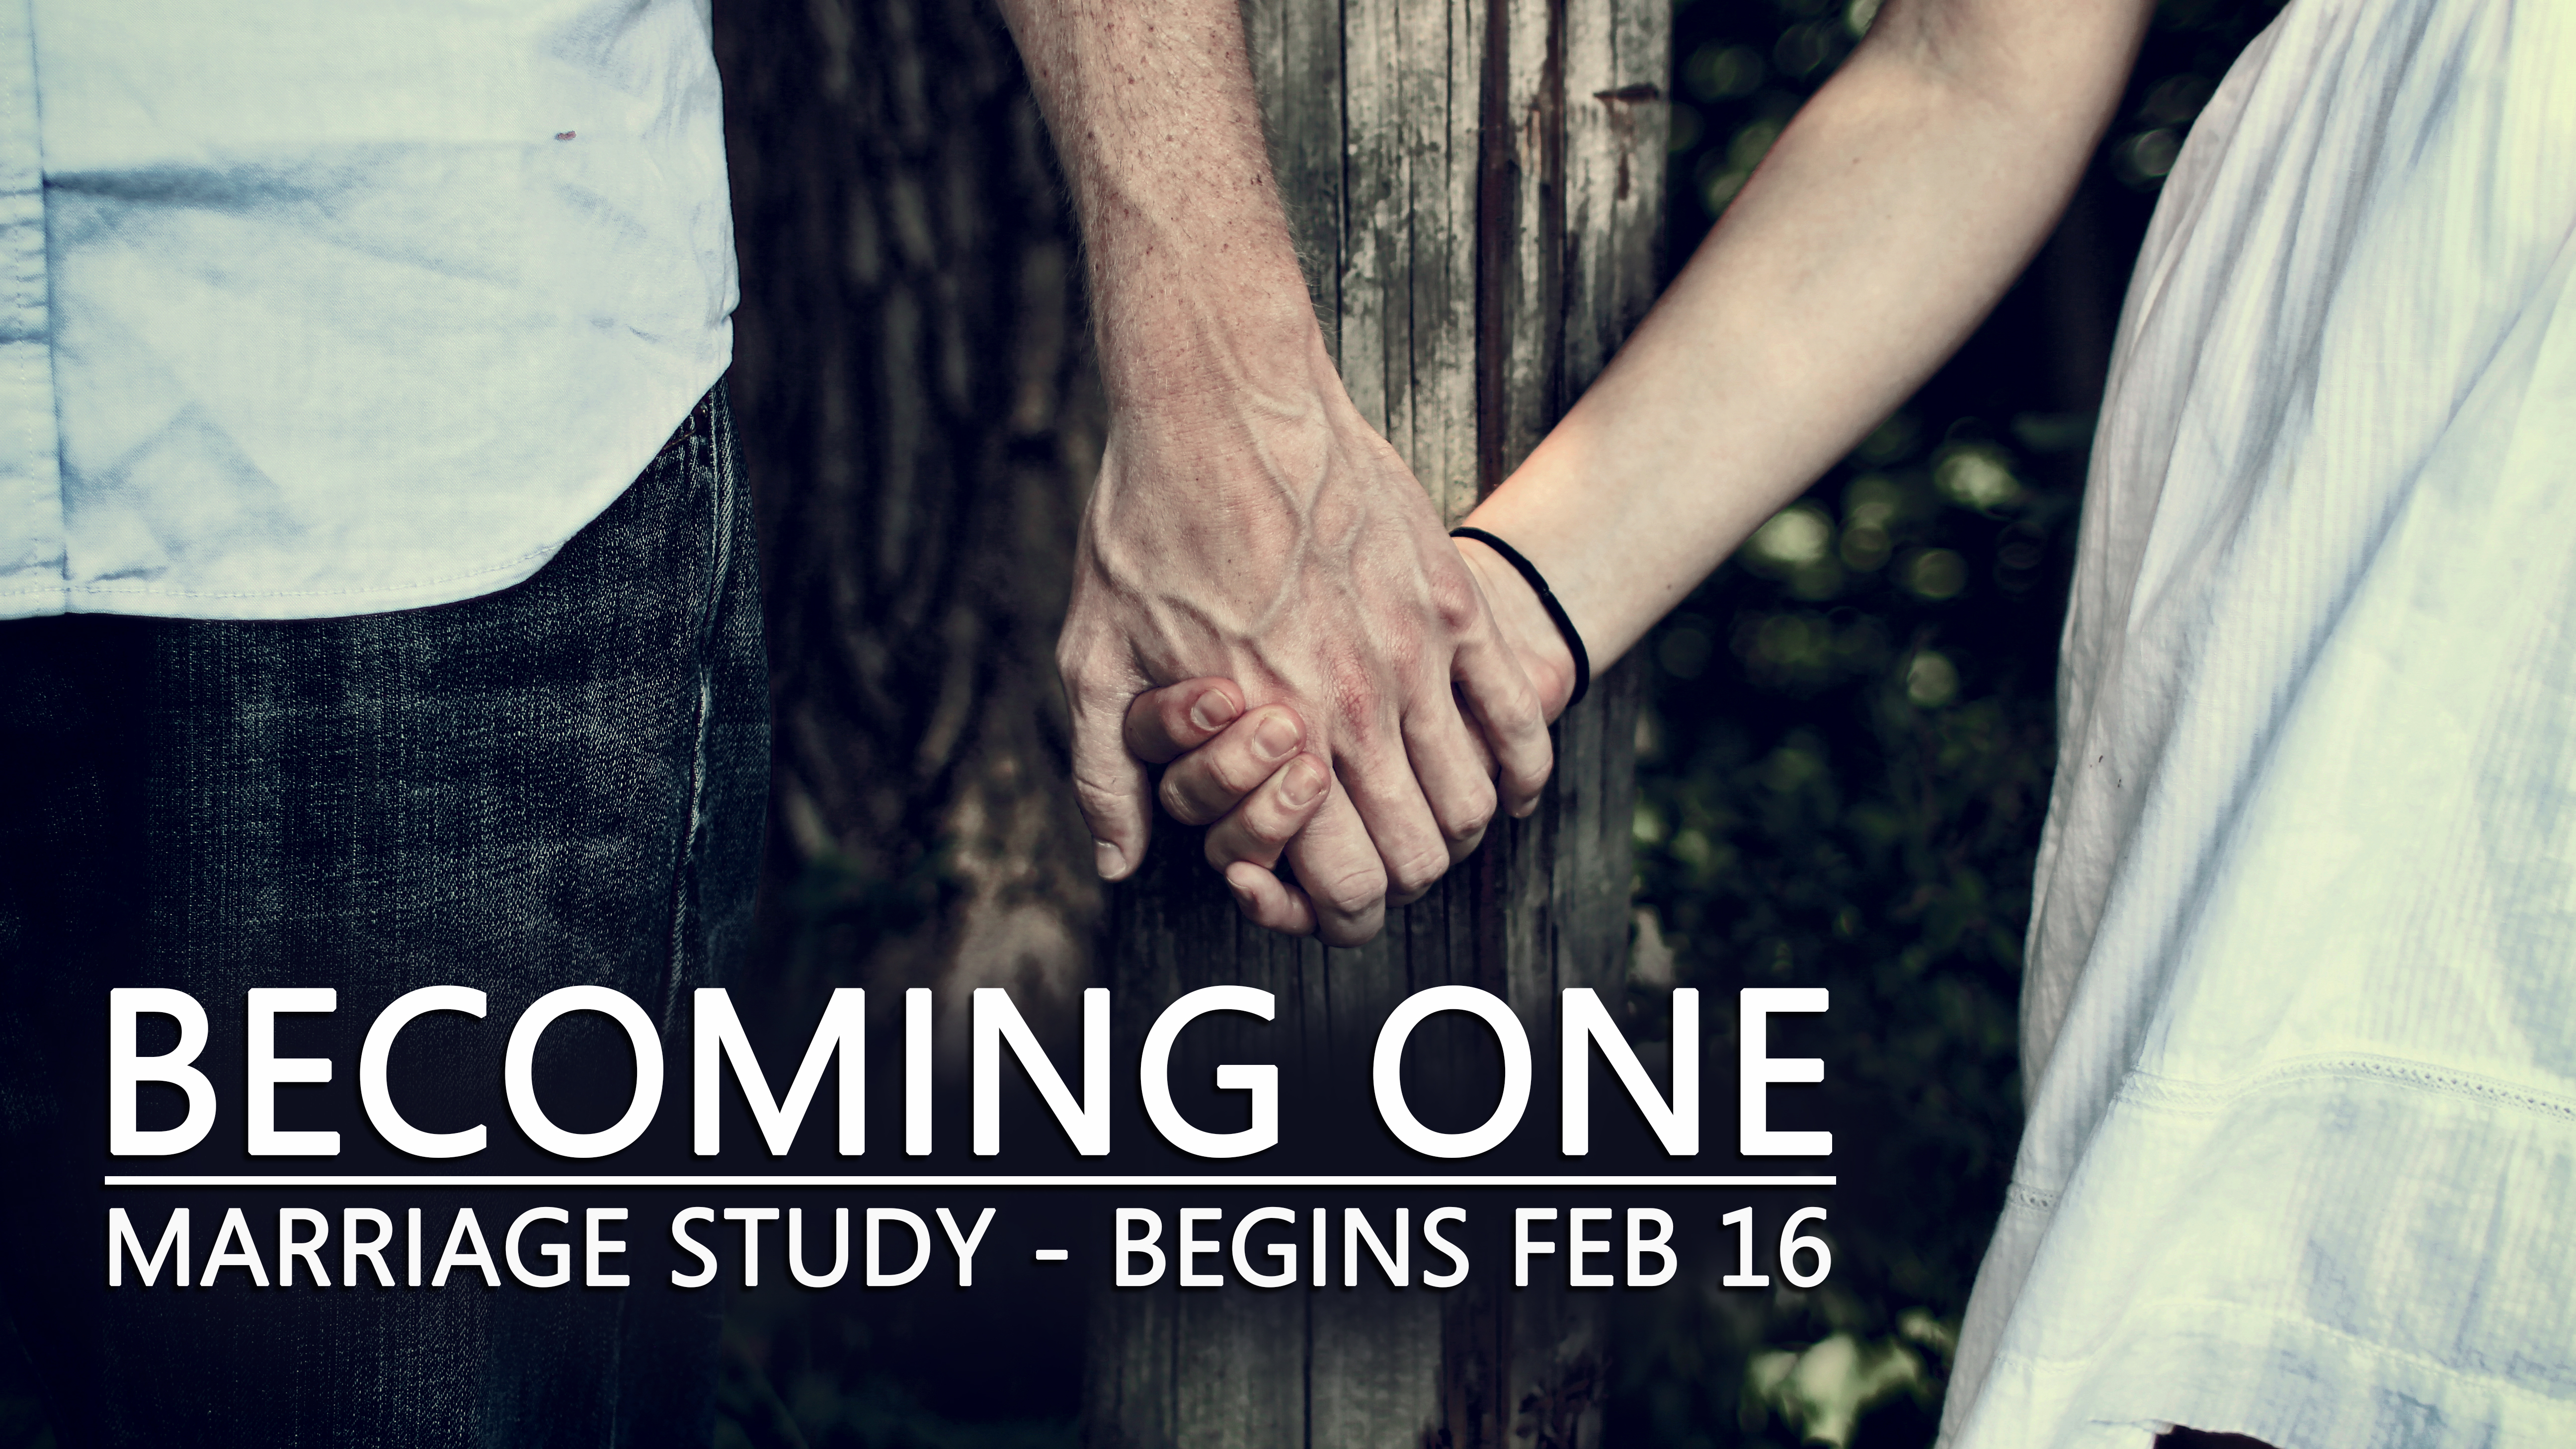 Becoming one announcement